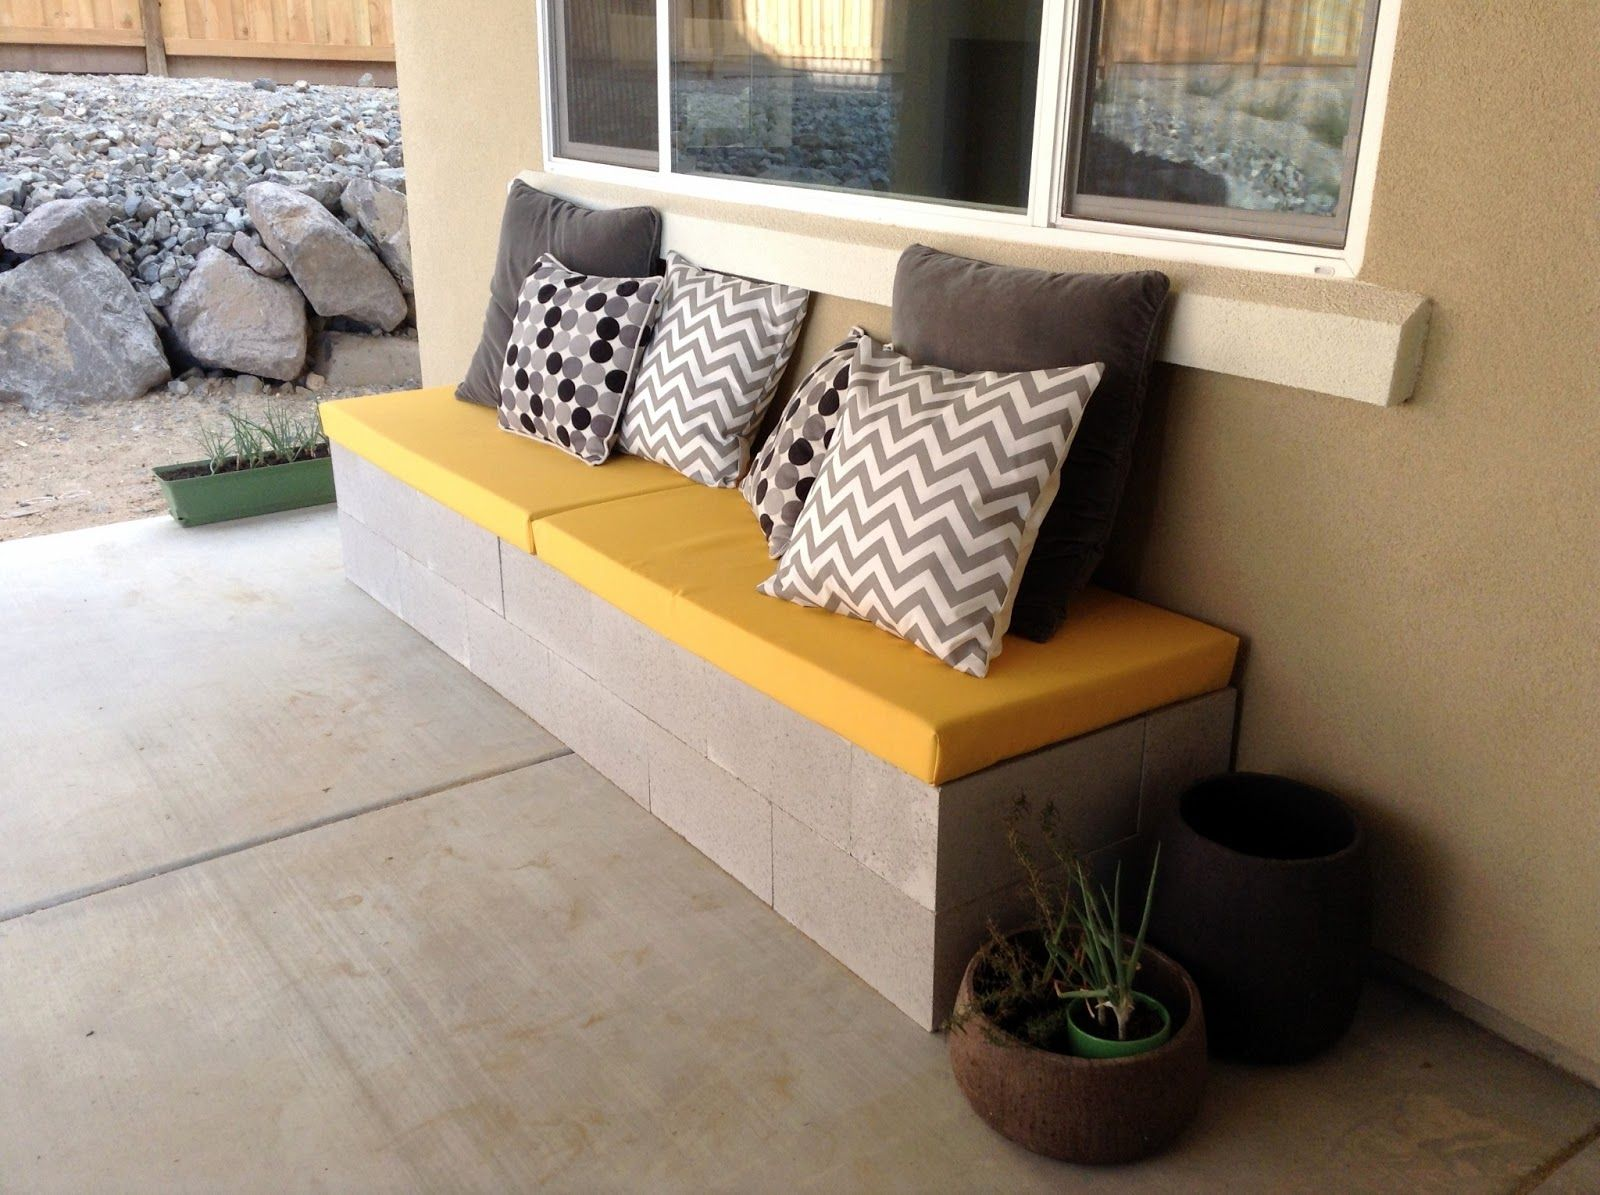 Cinder Block Bench Diy Bench Outdoor Patio Projects Cinder Block Bench